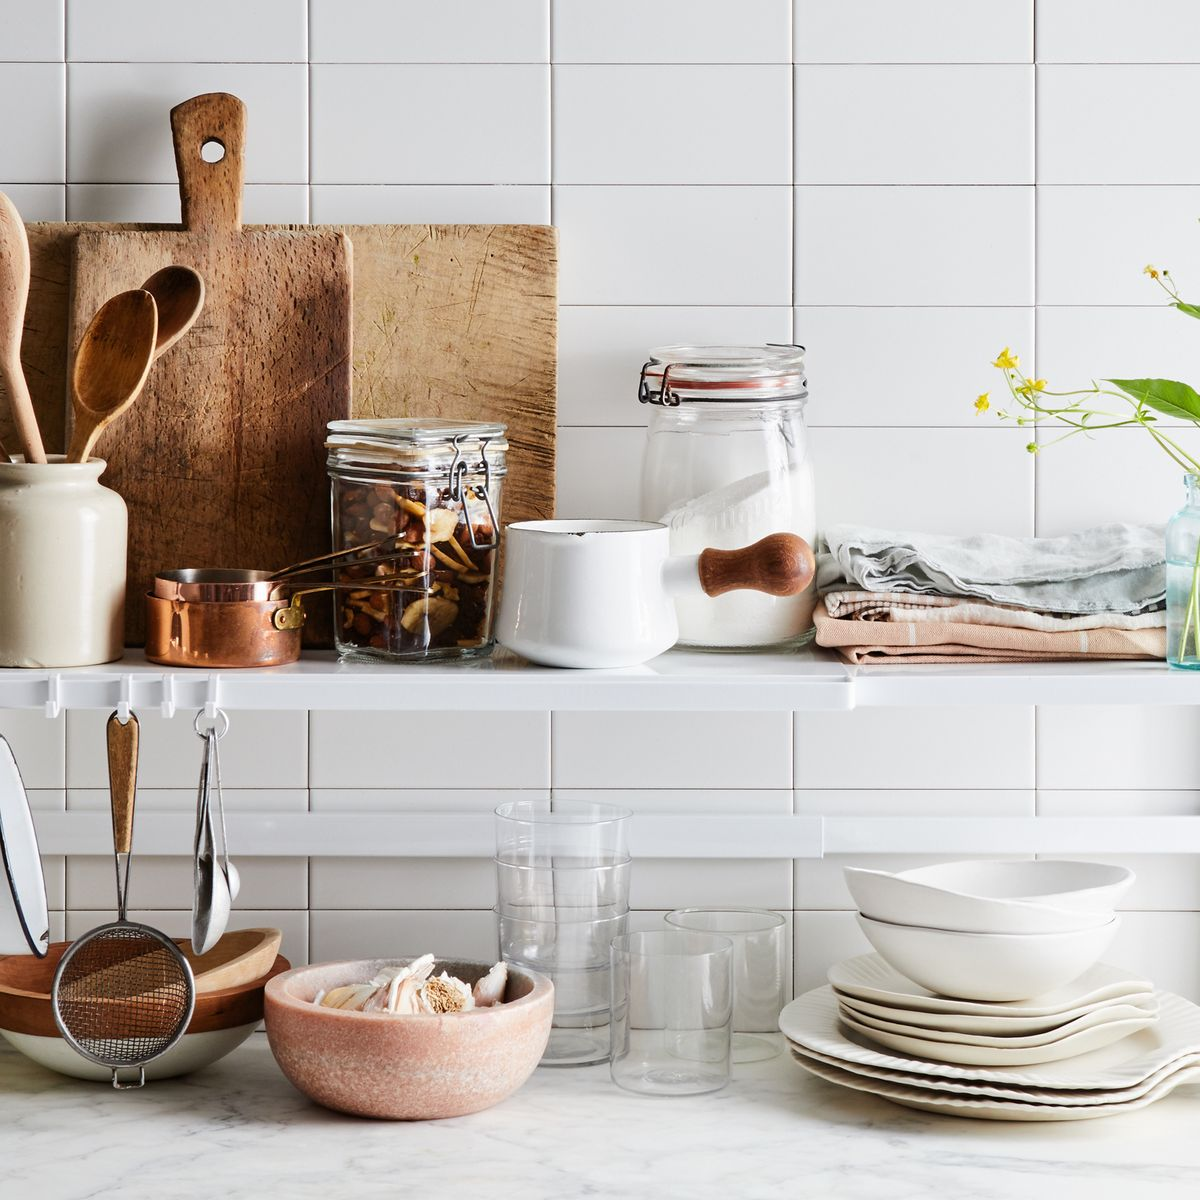 11 Kitchen Counter Decor Ideas How To Decorate Counters